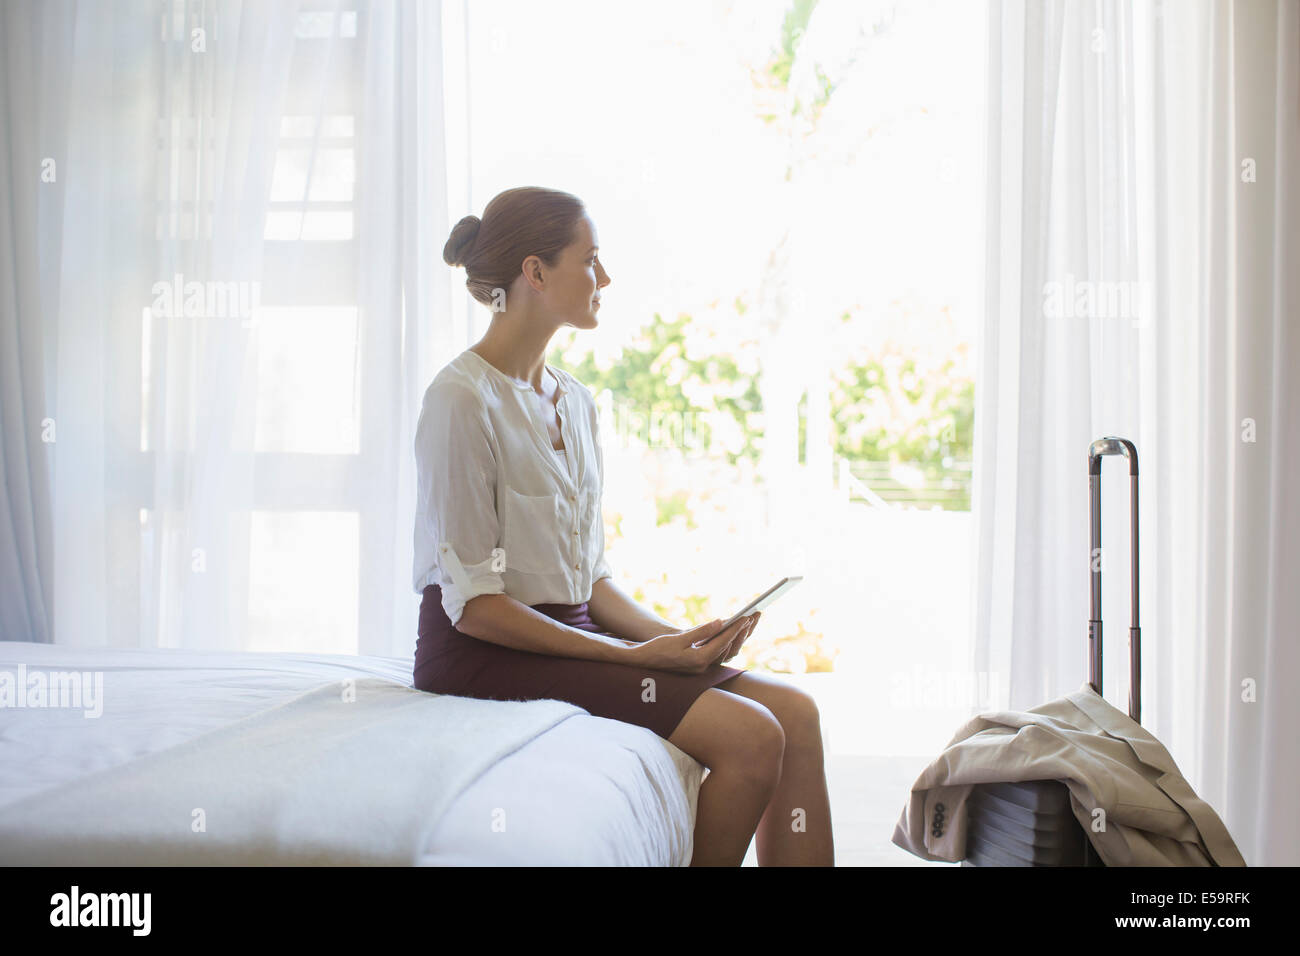 Businesswoman using digital tablet in hotel room - Stock Image